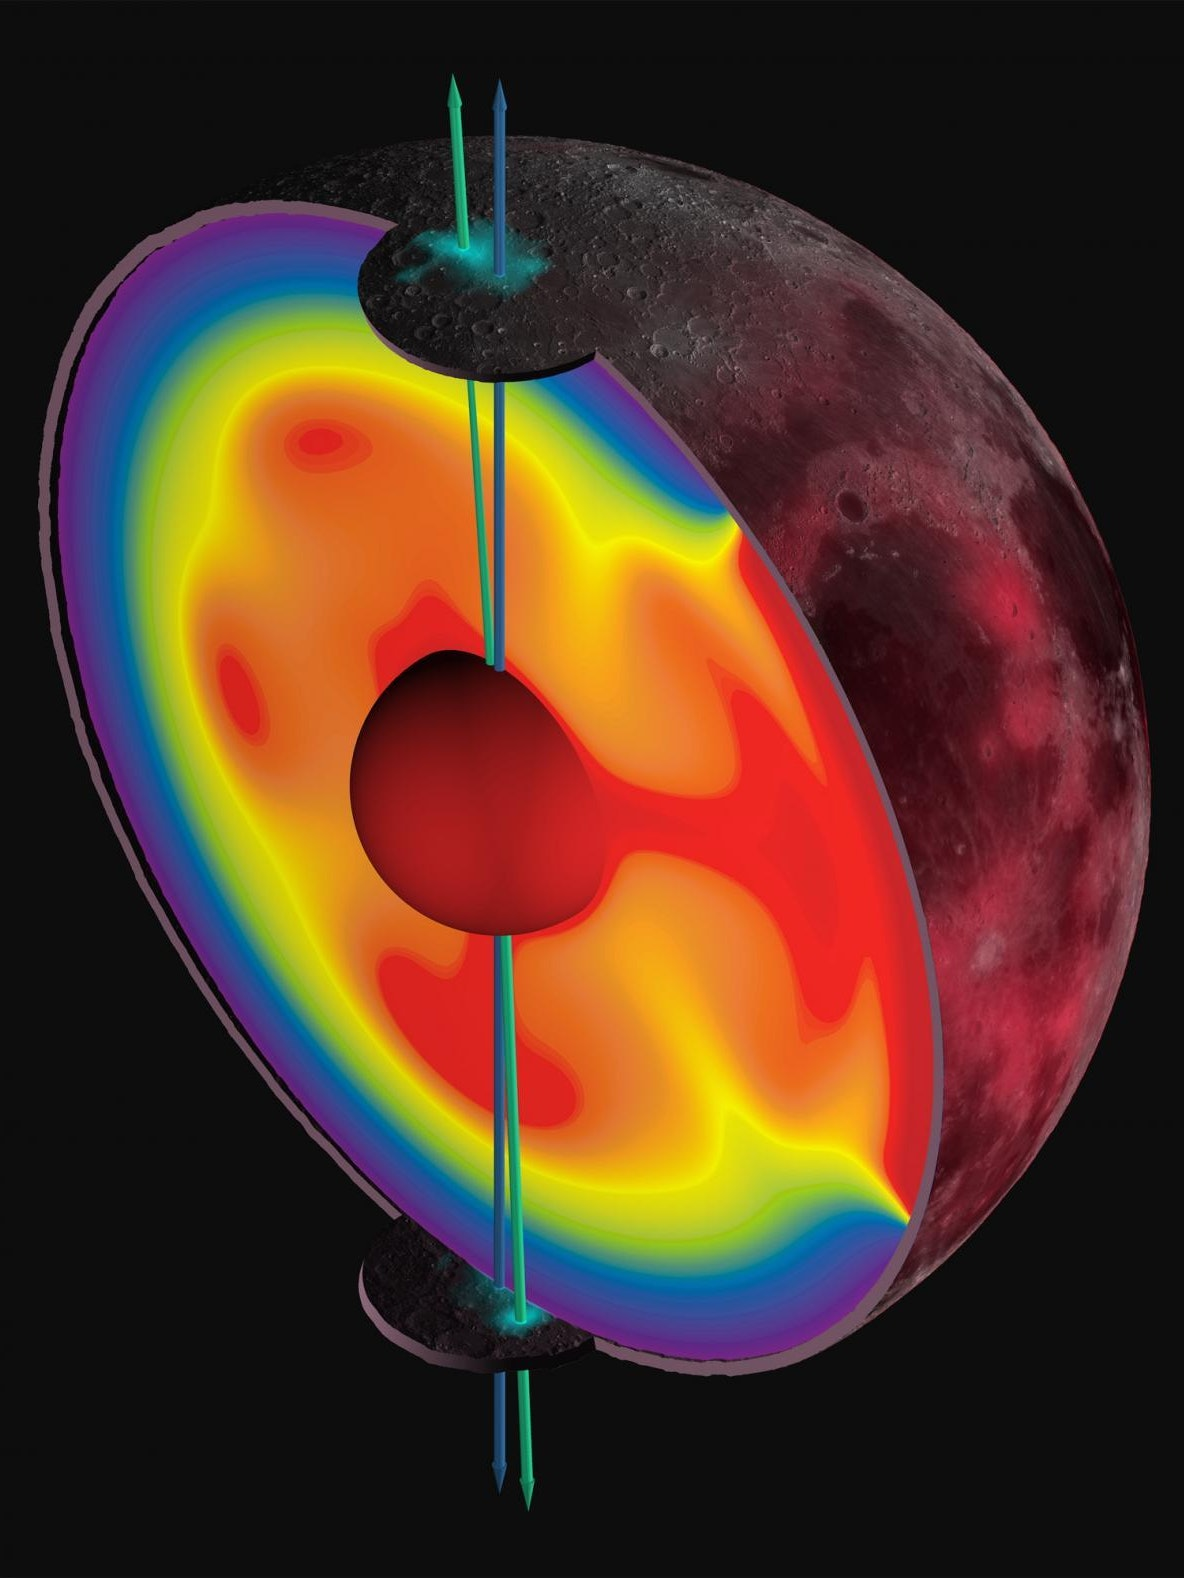 Here's How Volcanic Activity Tilted the Moon's Axis 3 Billion Years Ago